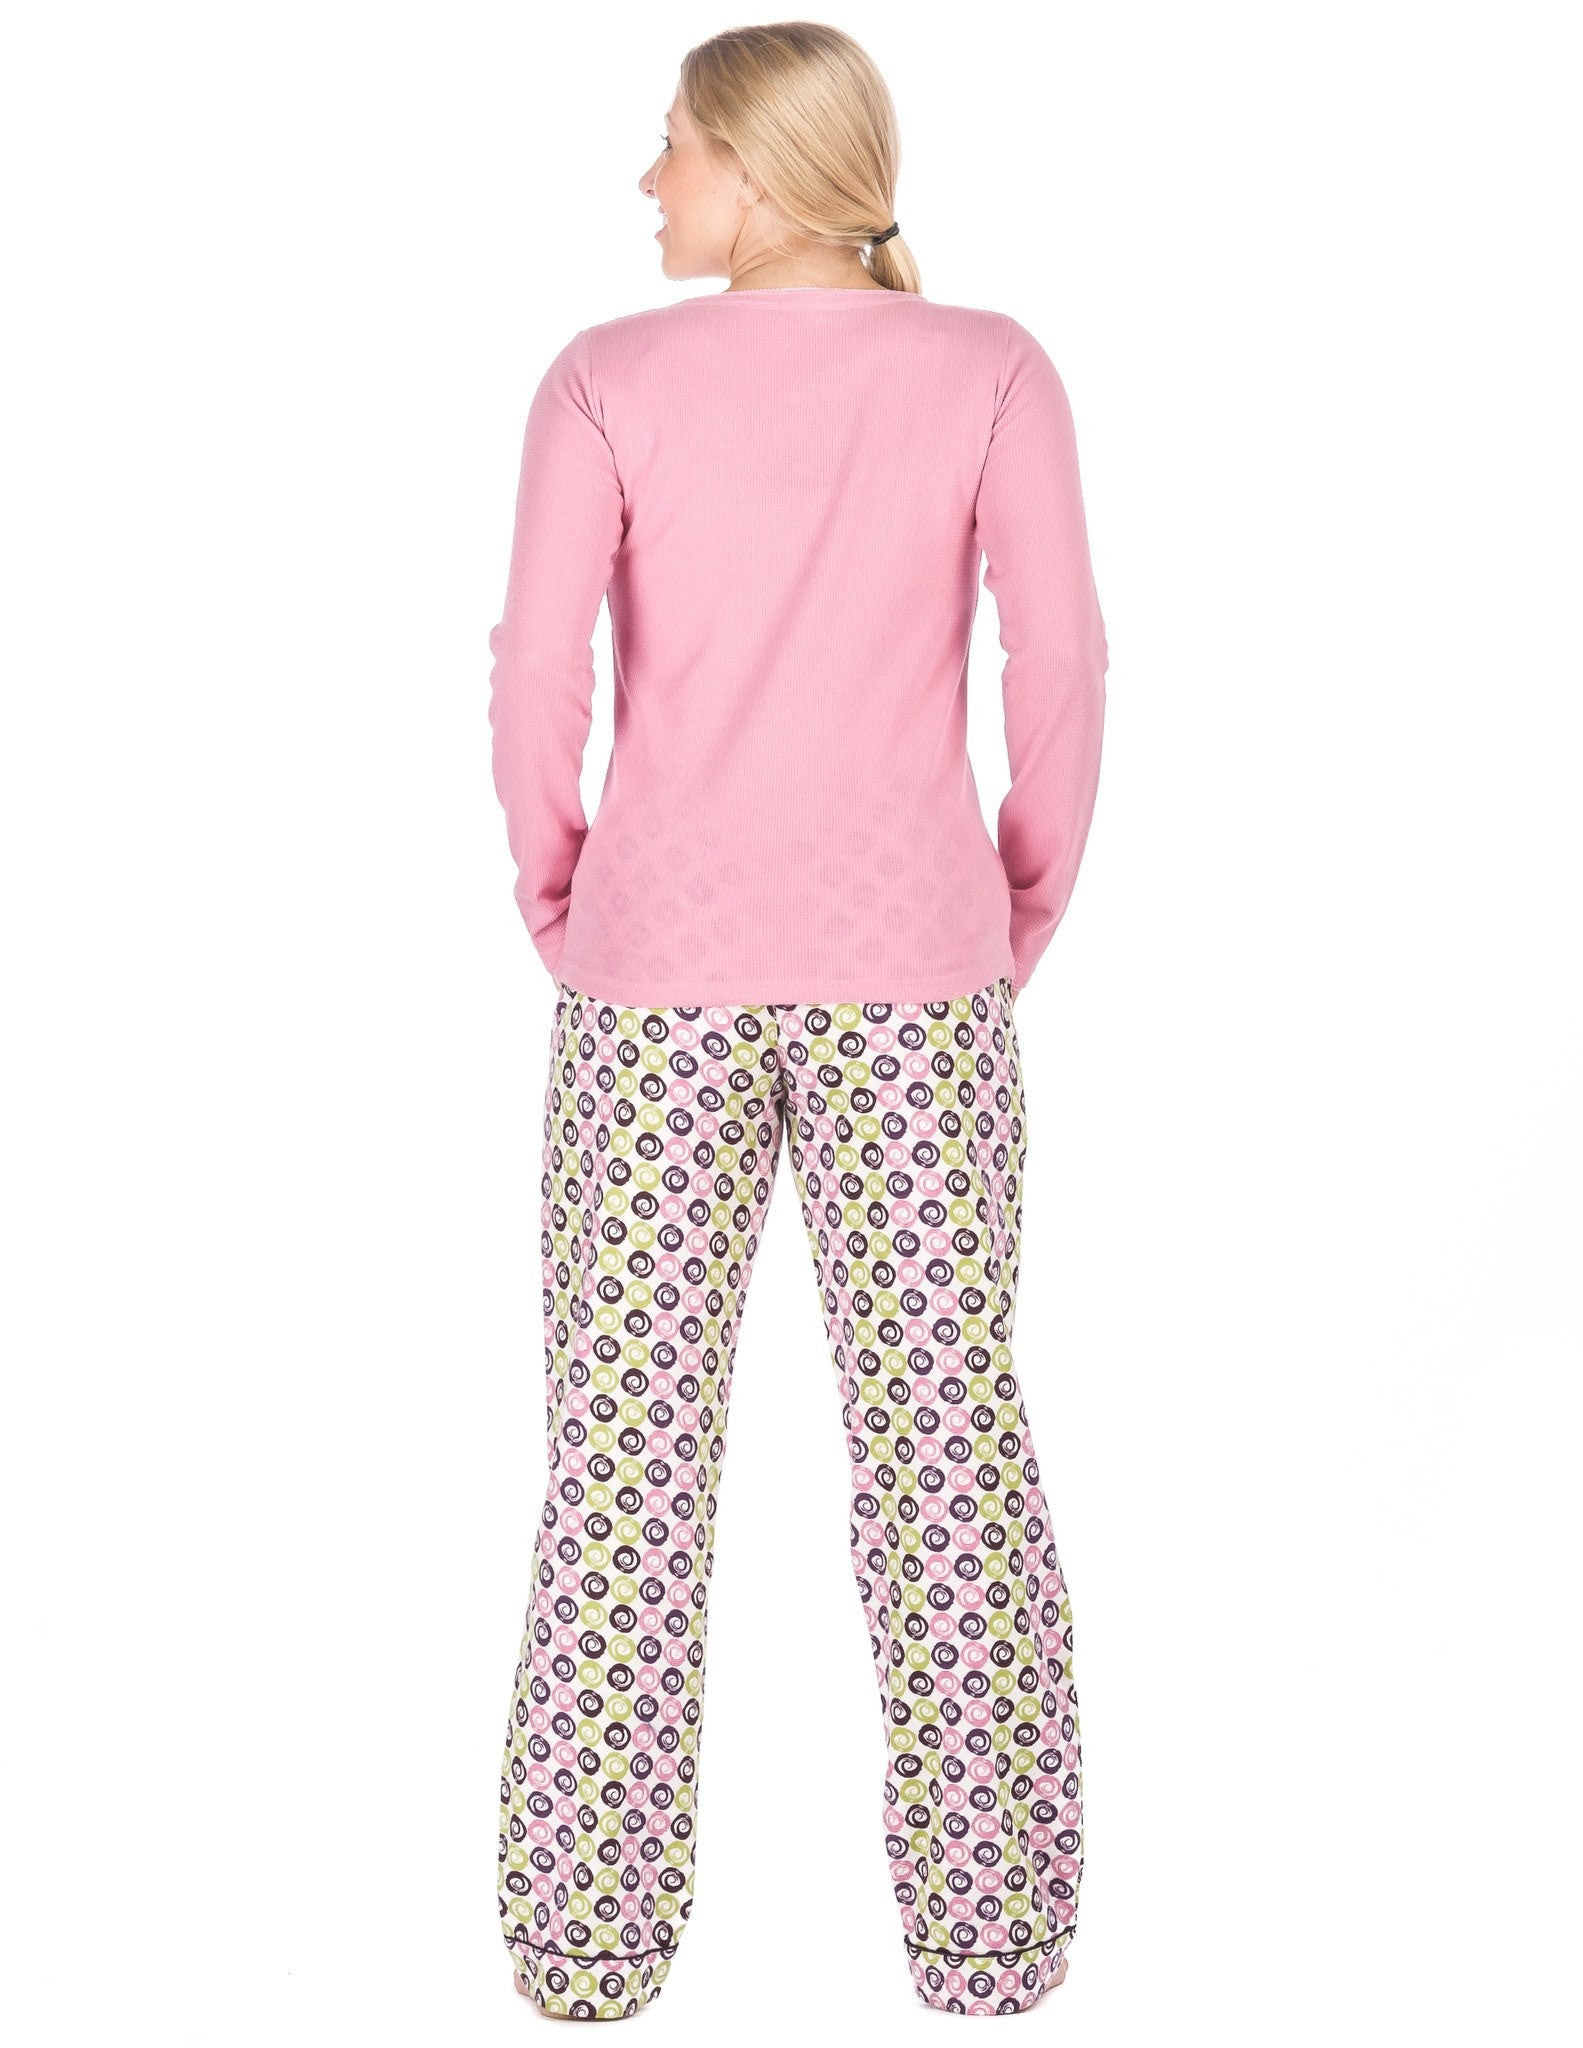 Noble Mount. Womens Premium 100% Cotton Flannel Loungewear Set - Relaxed Fit 86a55ac93